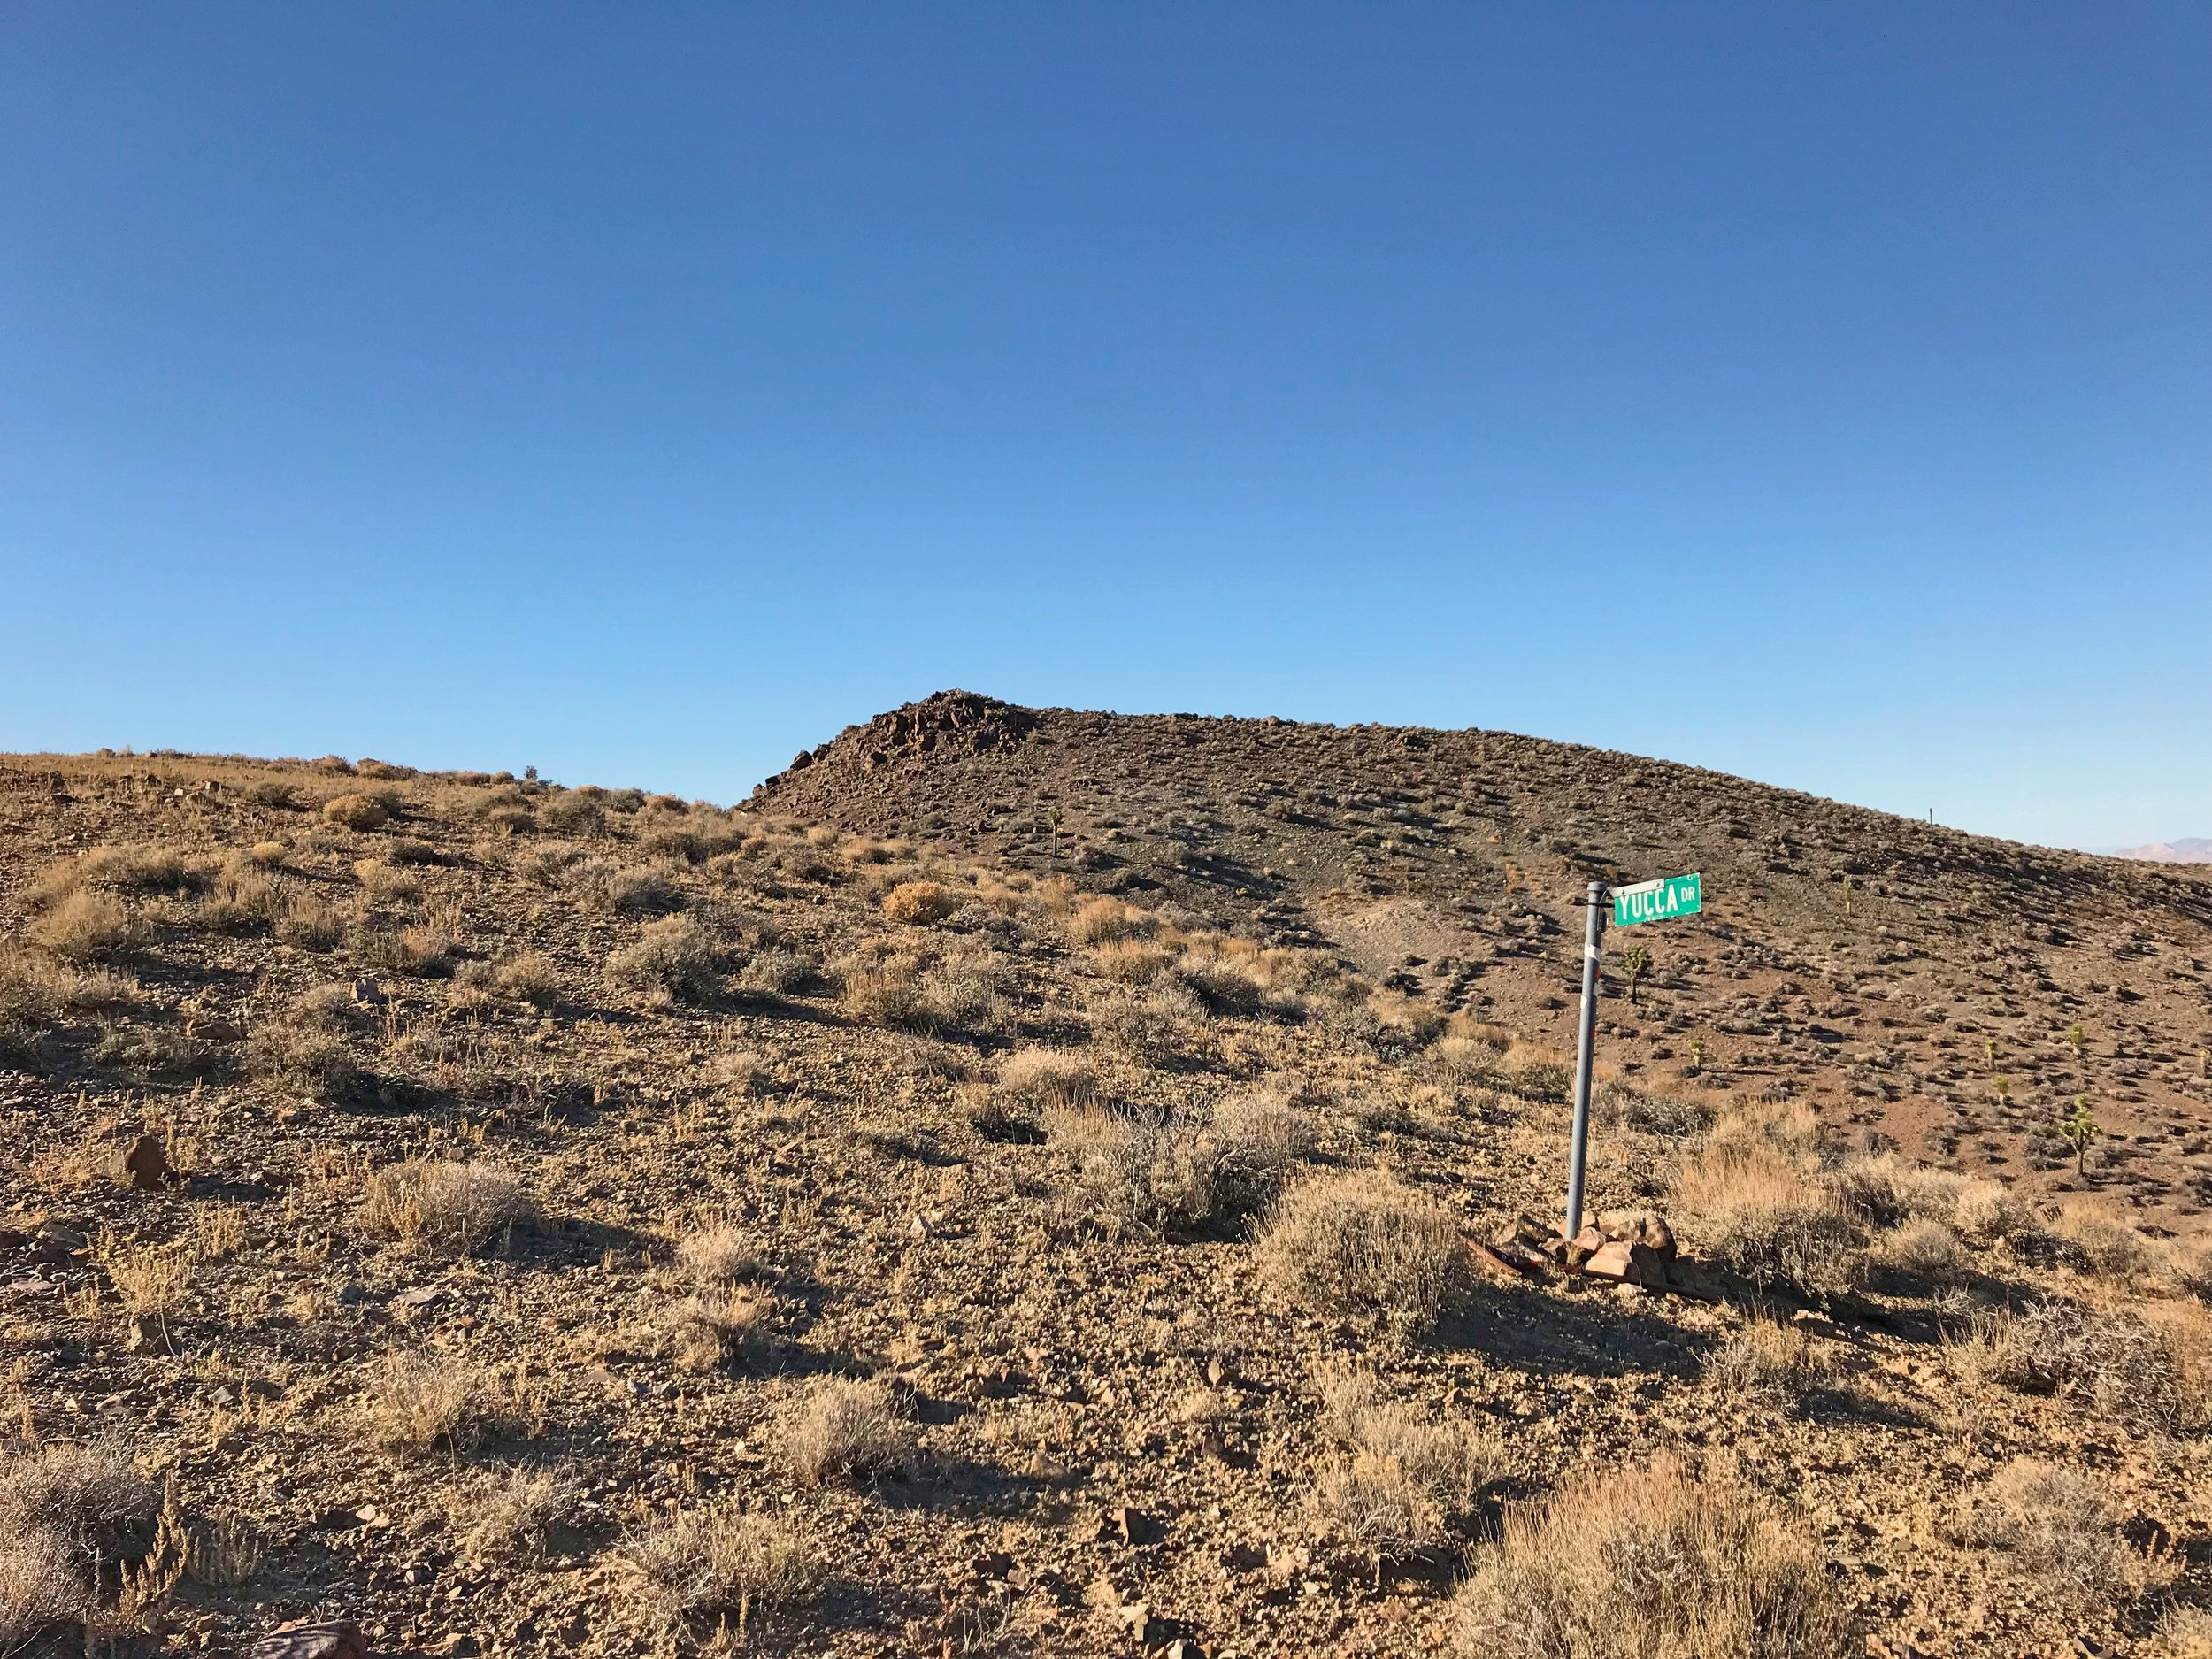 We spotted this random road sign for Yucca Dr. on top of a ridge nowhere close to a road while we were running around the International Car Forest.